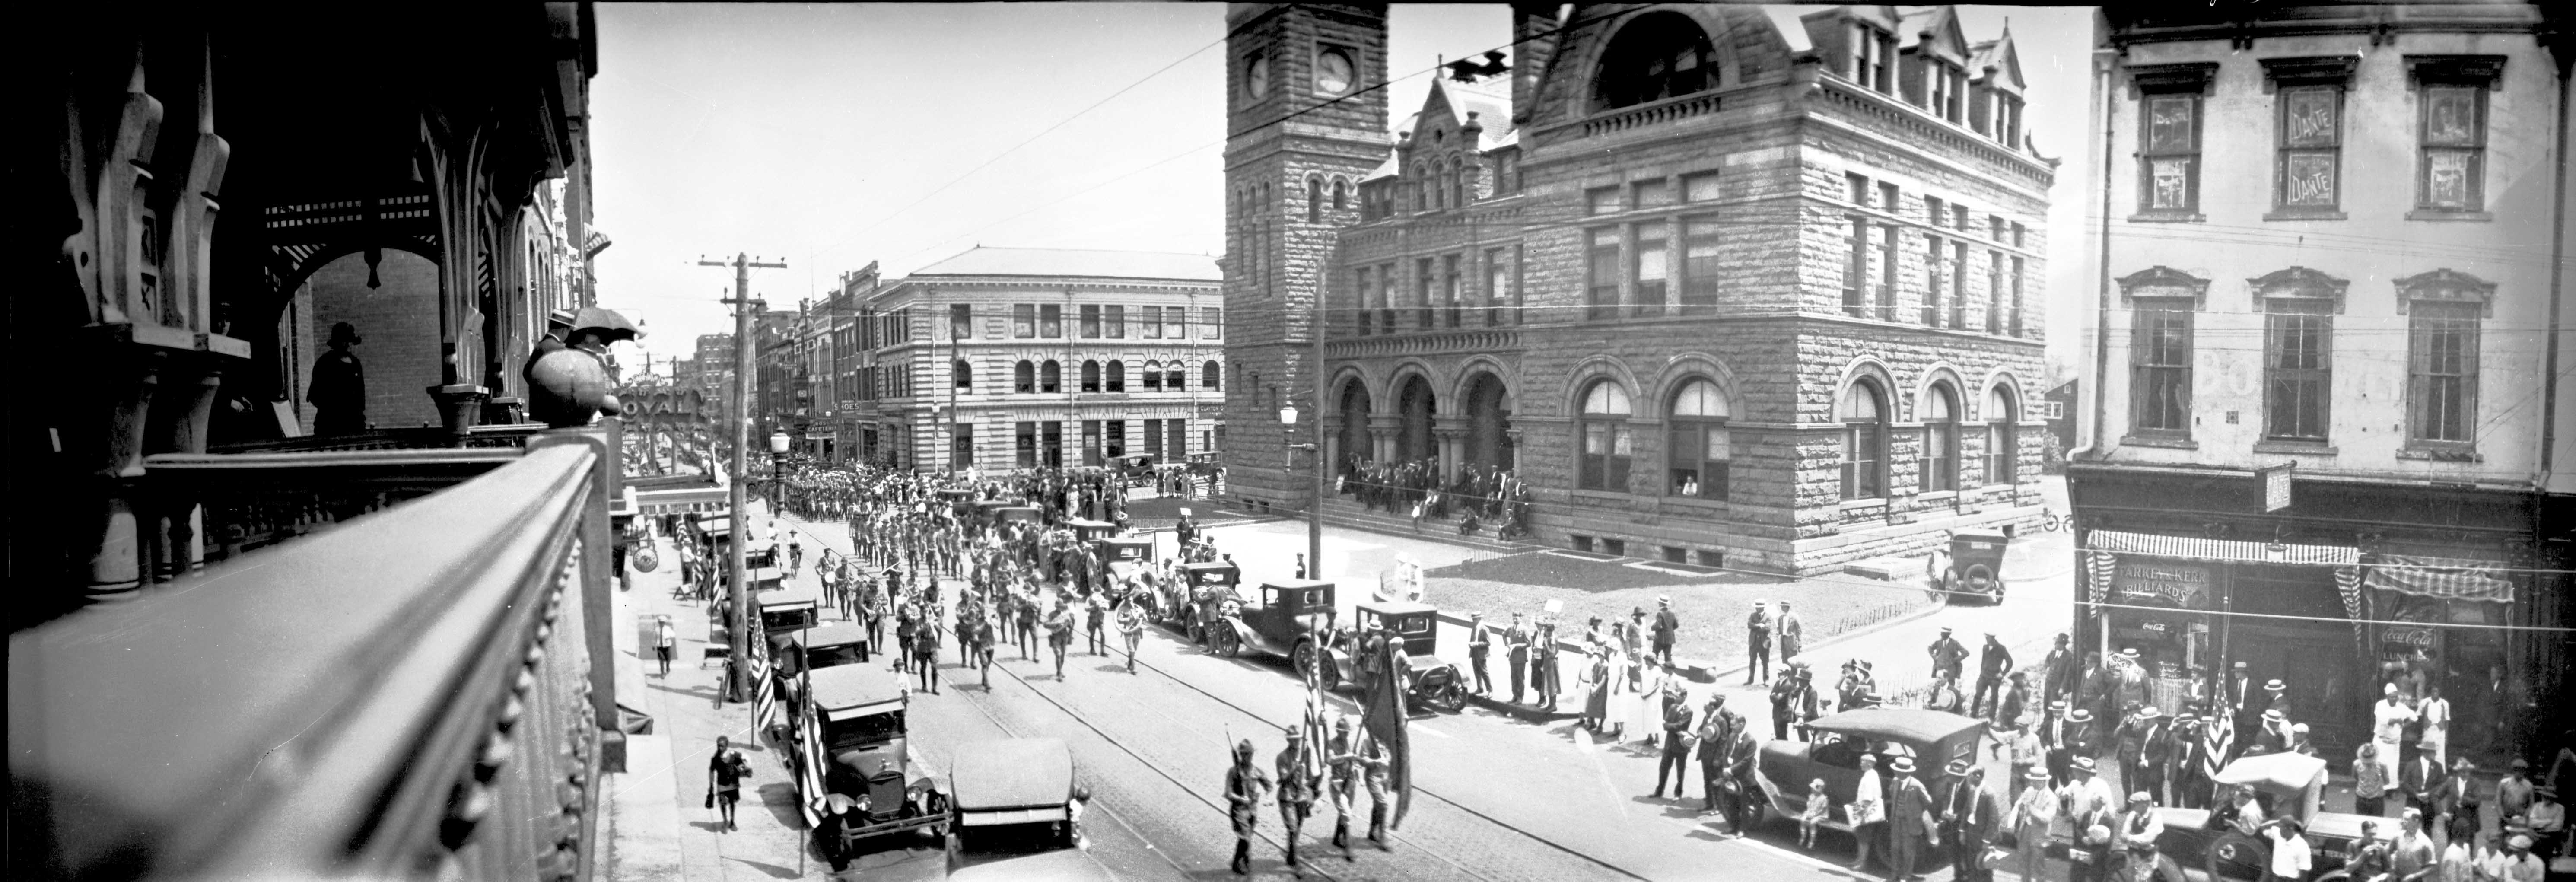 The Subject Of This Photograph Is A Decoration Day Parade, But The  Architecture Also Is Fascinating. The Romanesque Style U. S. Post Office  Building On The ...